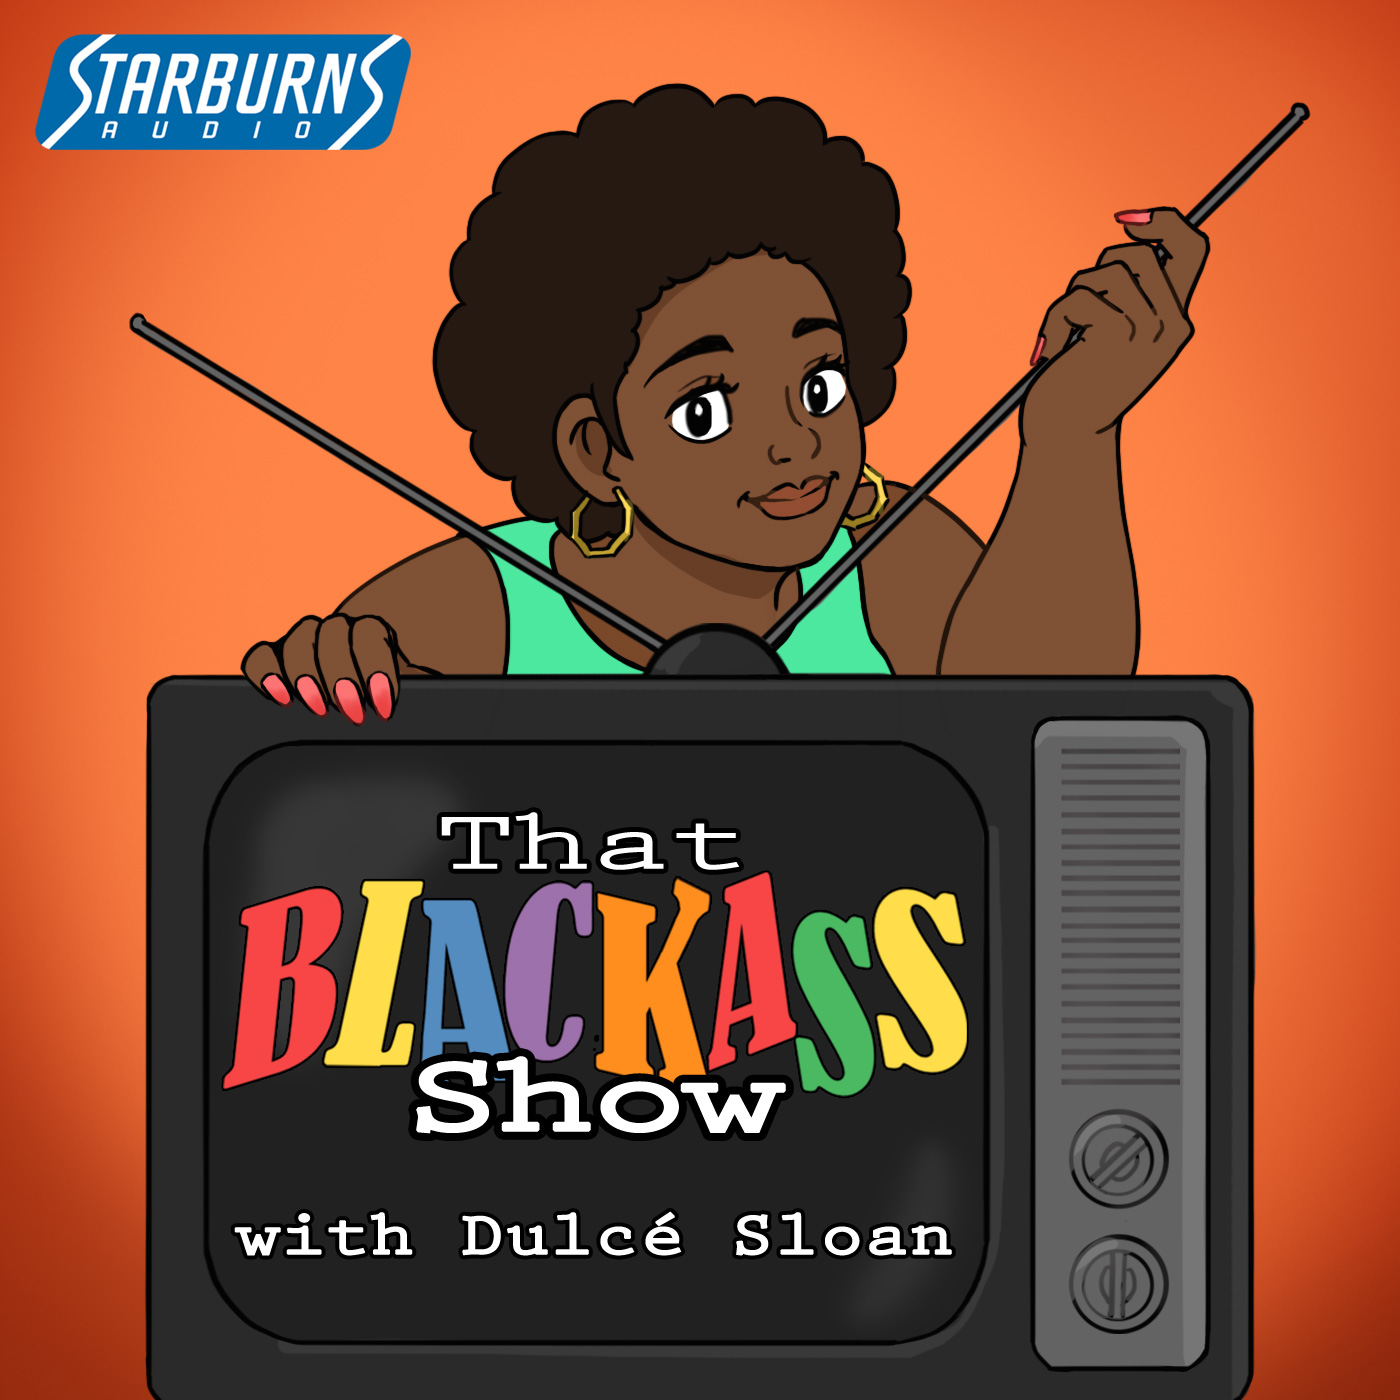 That Blackass Show Podcast Cover - Square